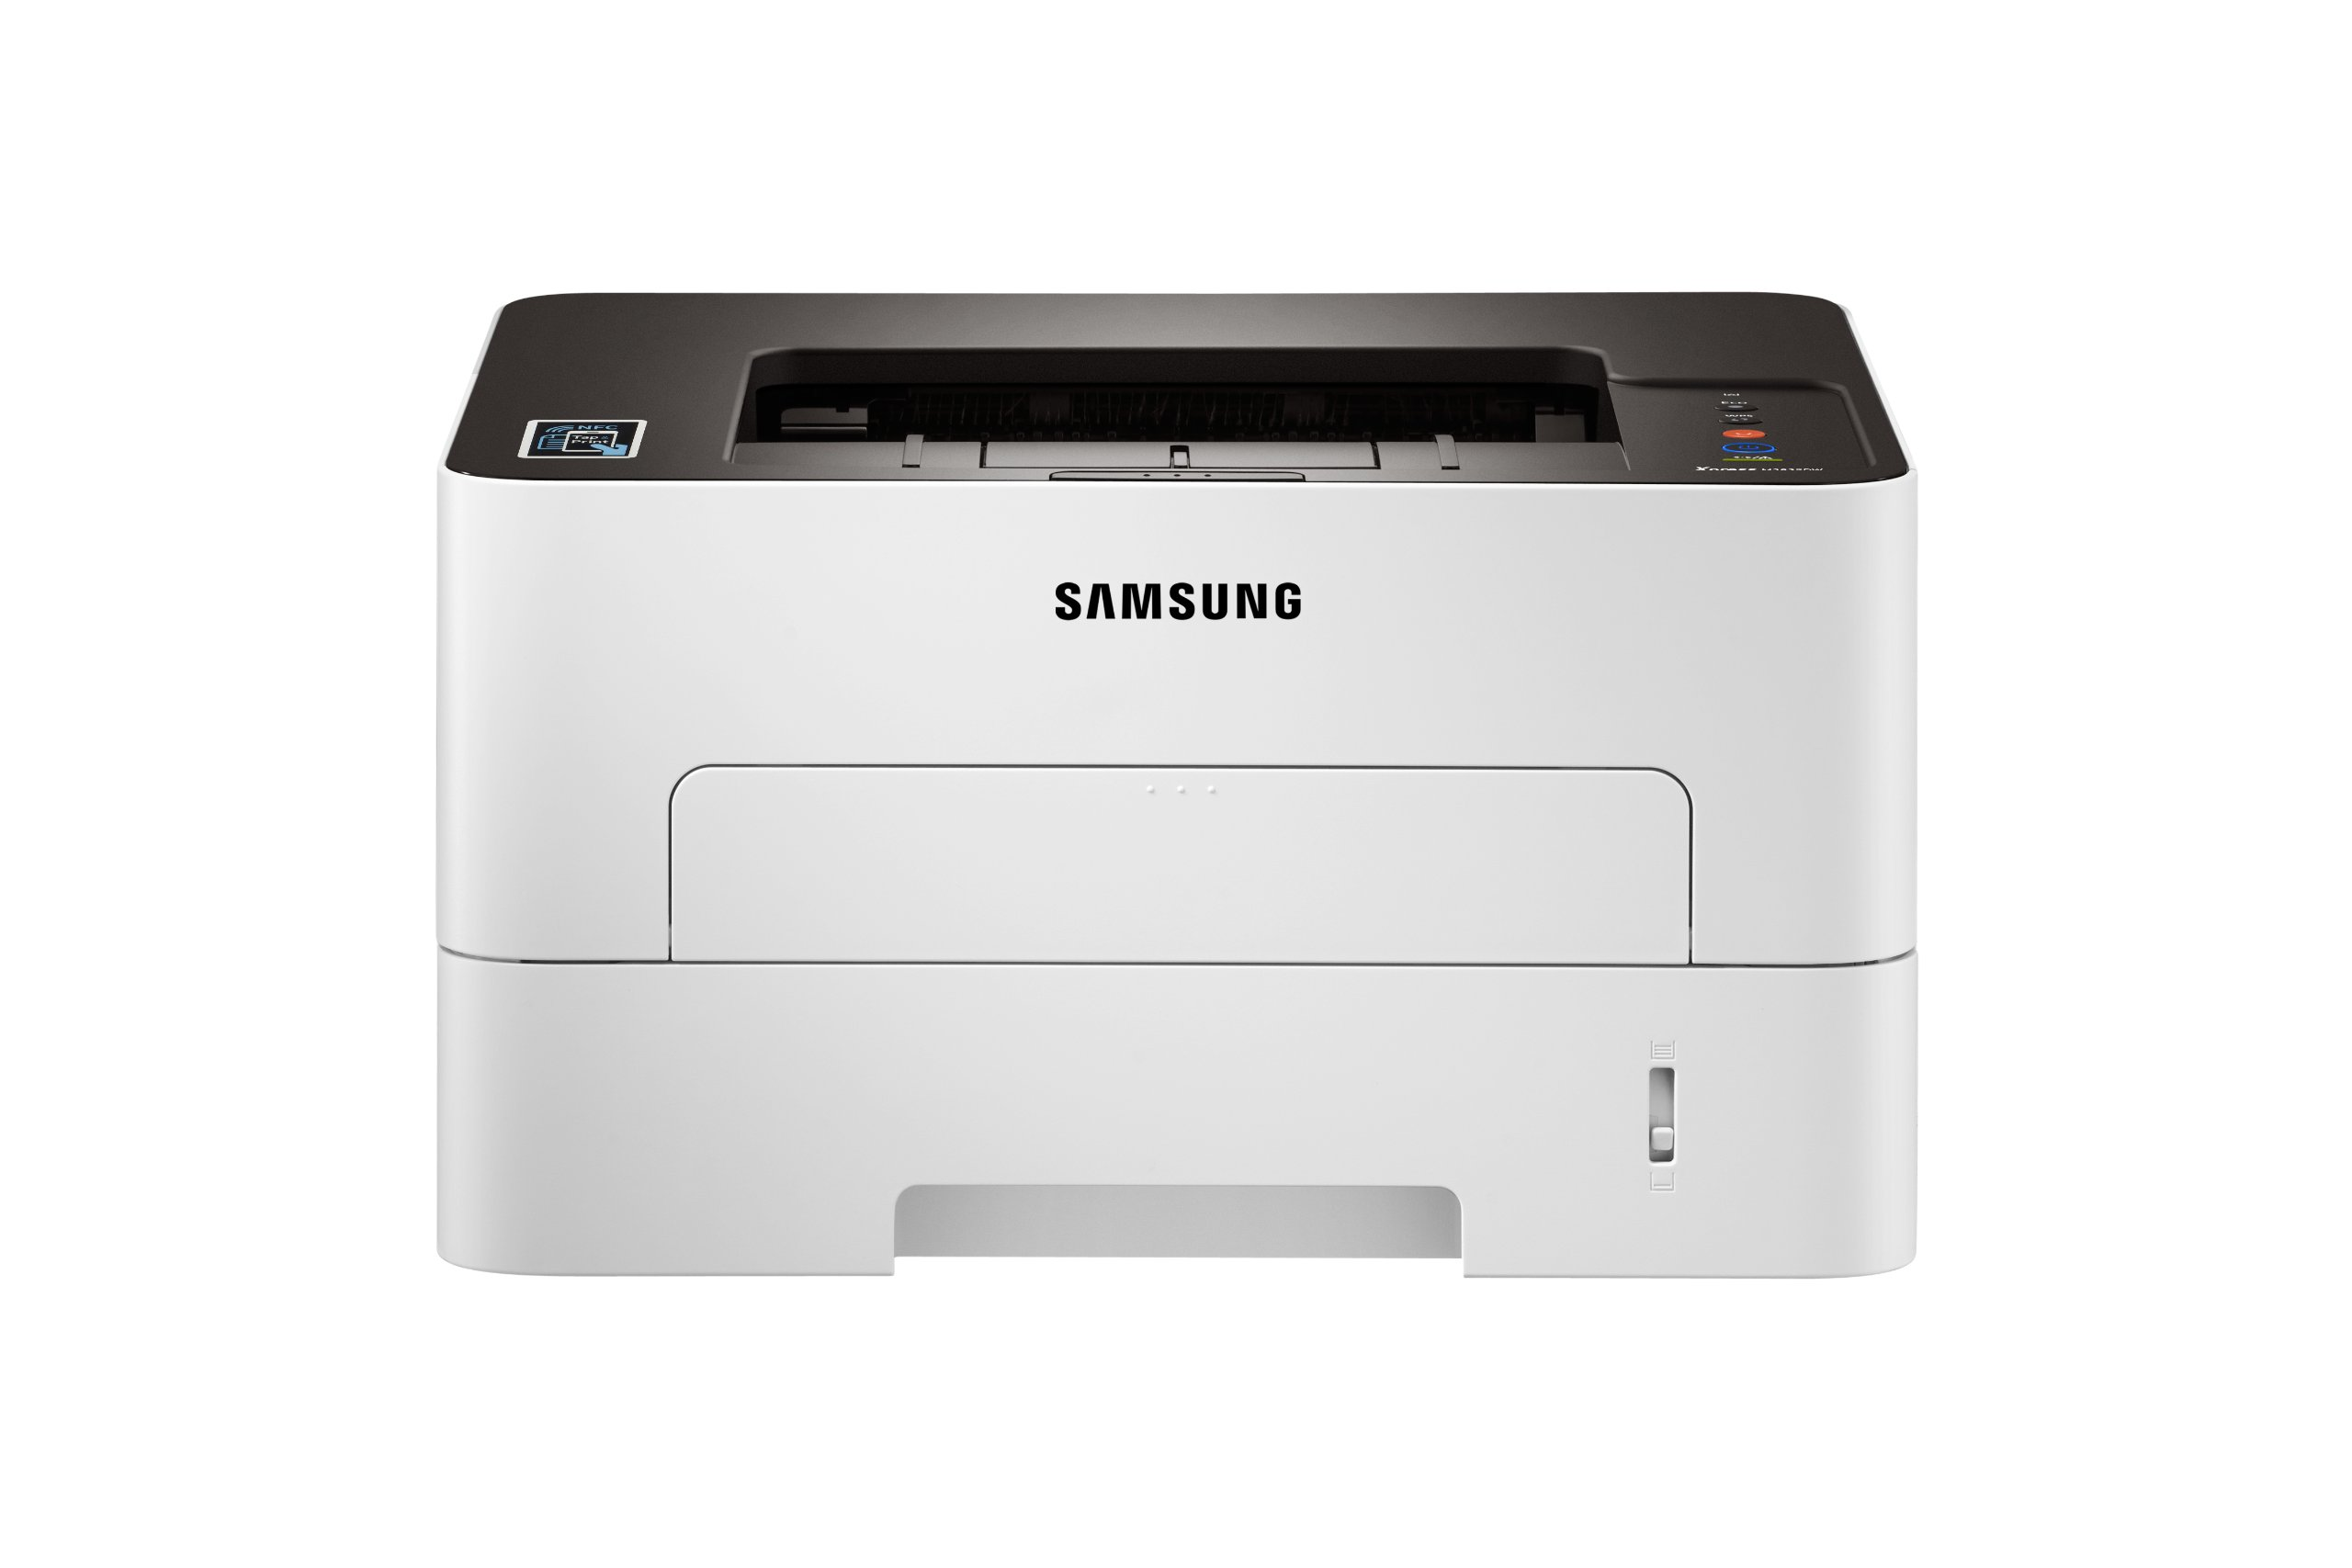 Samsung Xpress SL-M2835DW/XAA Wireless Monochrome Printer, Amazon Dash Replenishment Enabled (SS346C) by HP